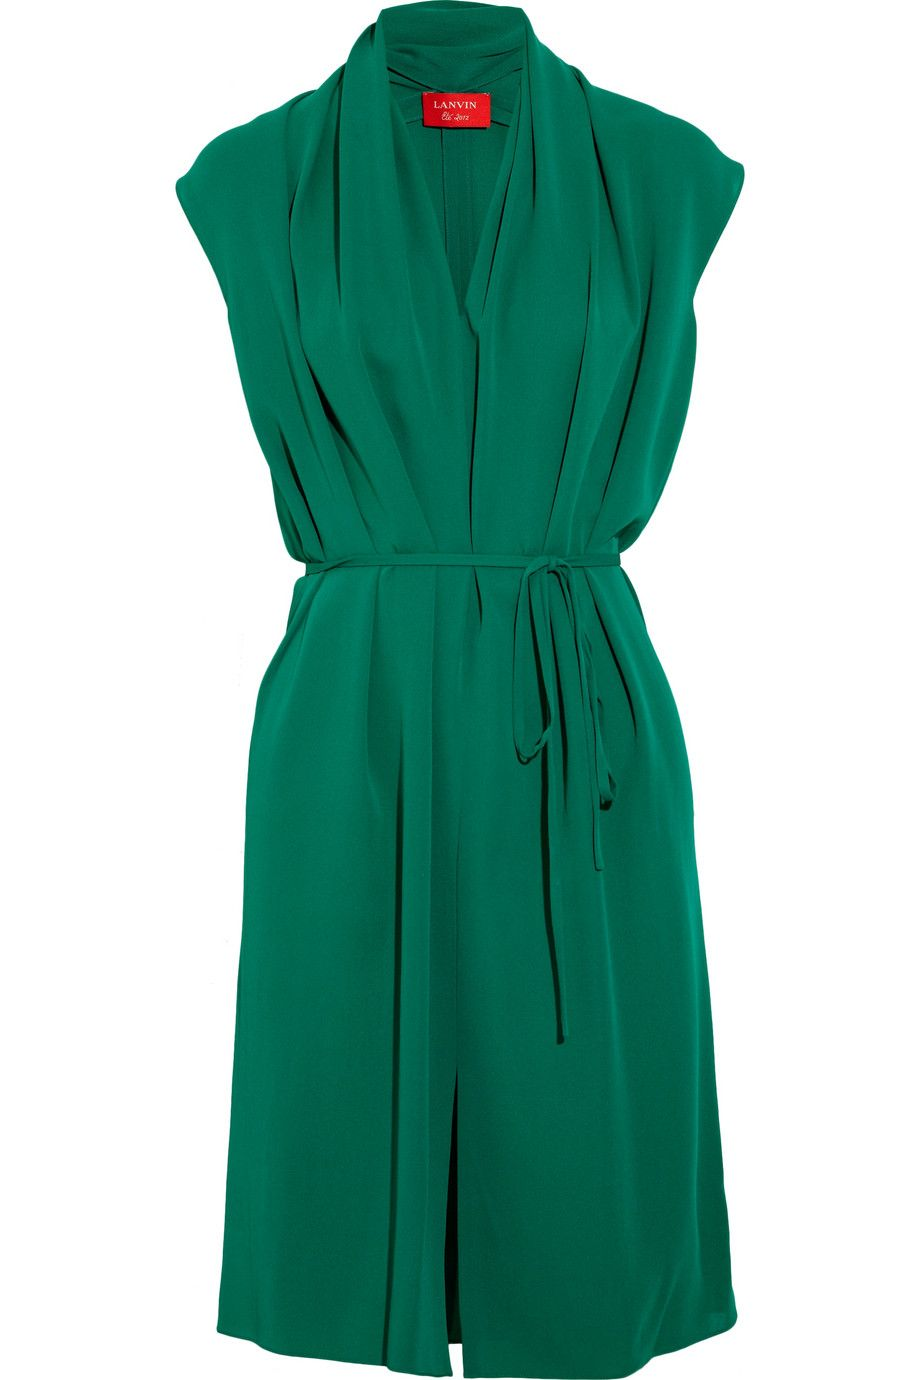 LANVIN  Draped silk dress - this would be an awesome dress for Arbonne's GTC!